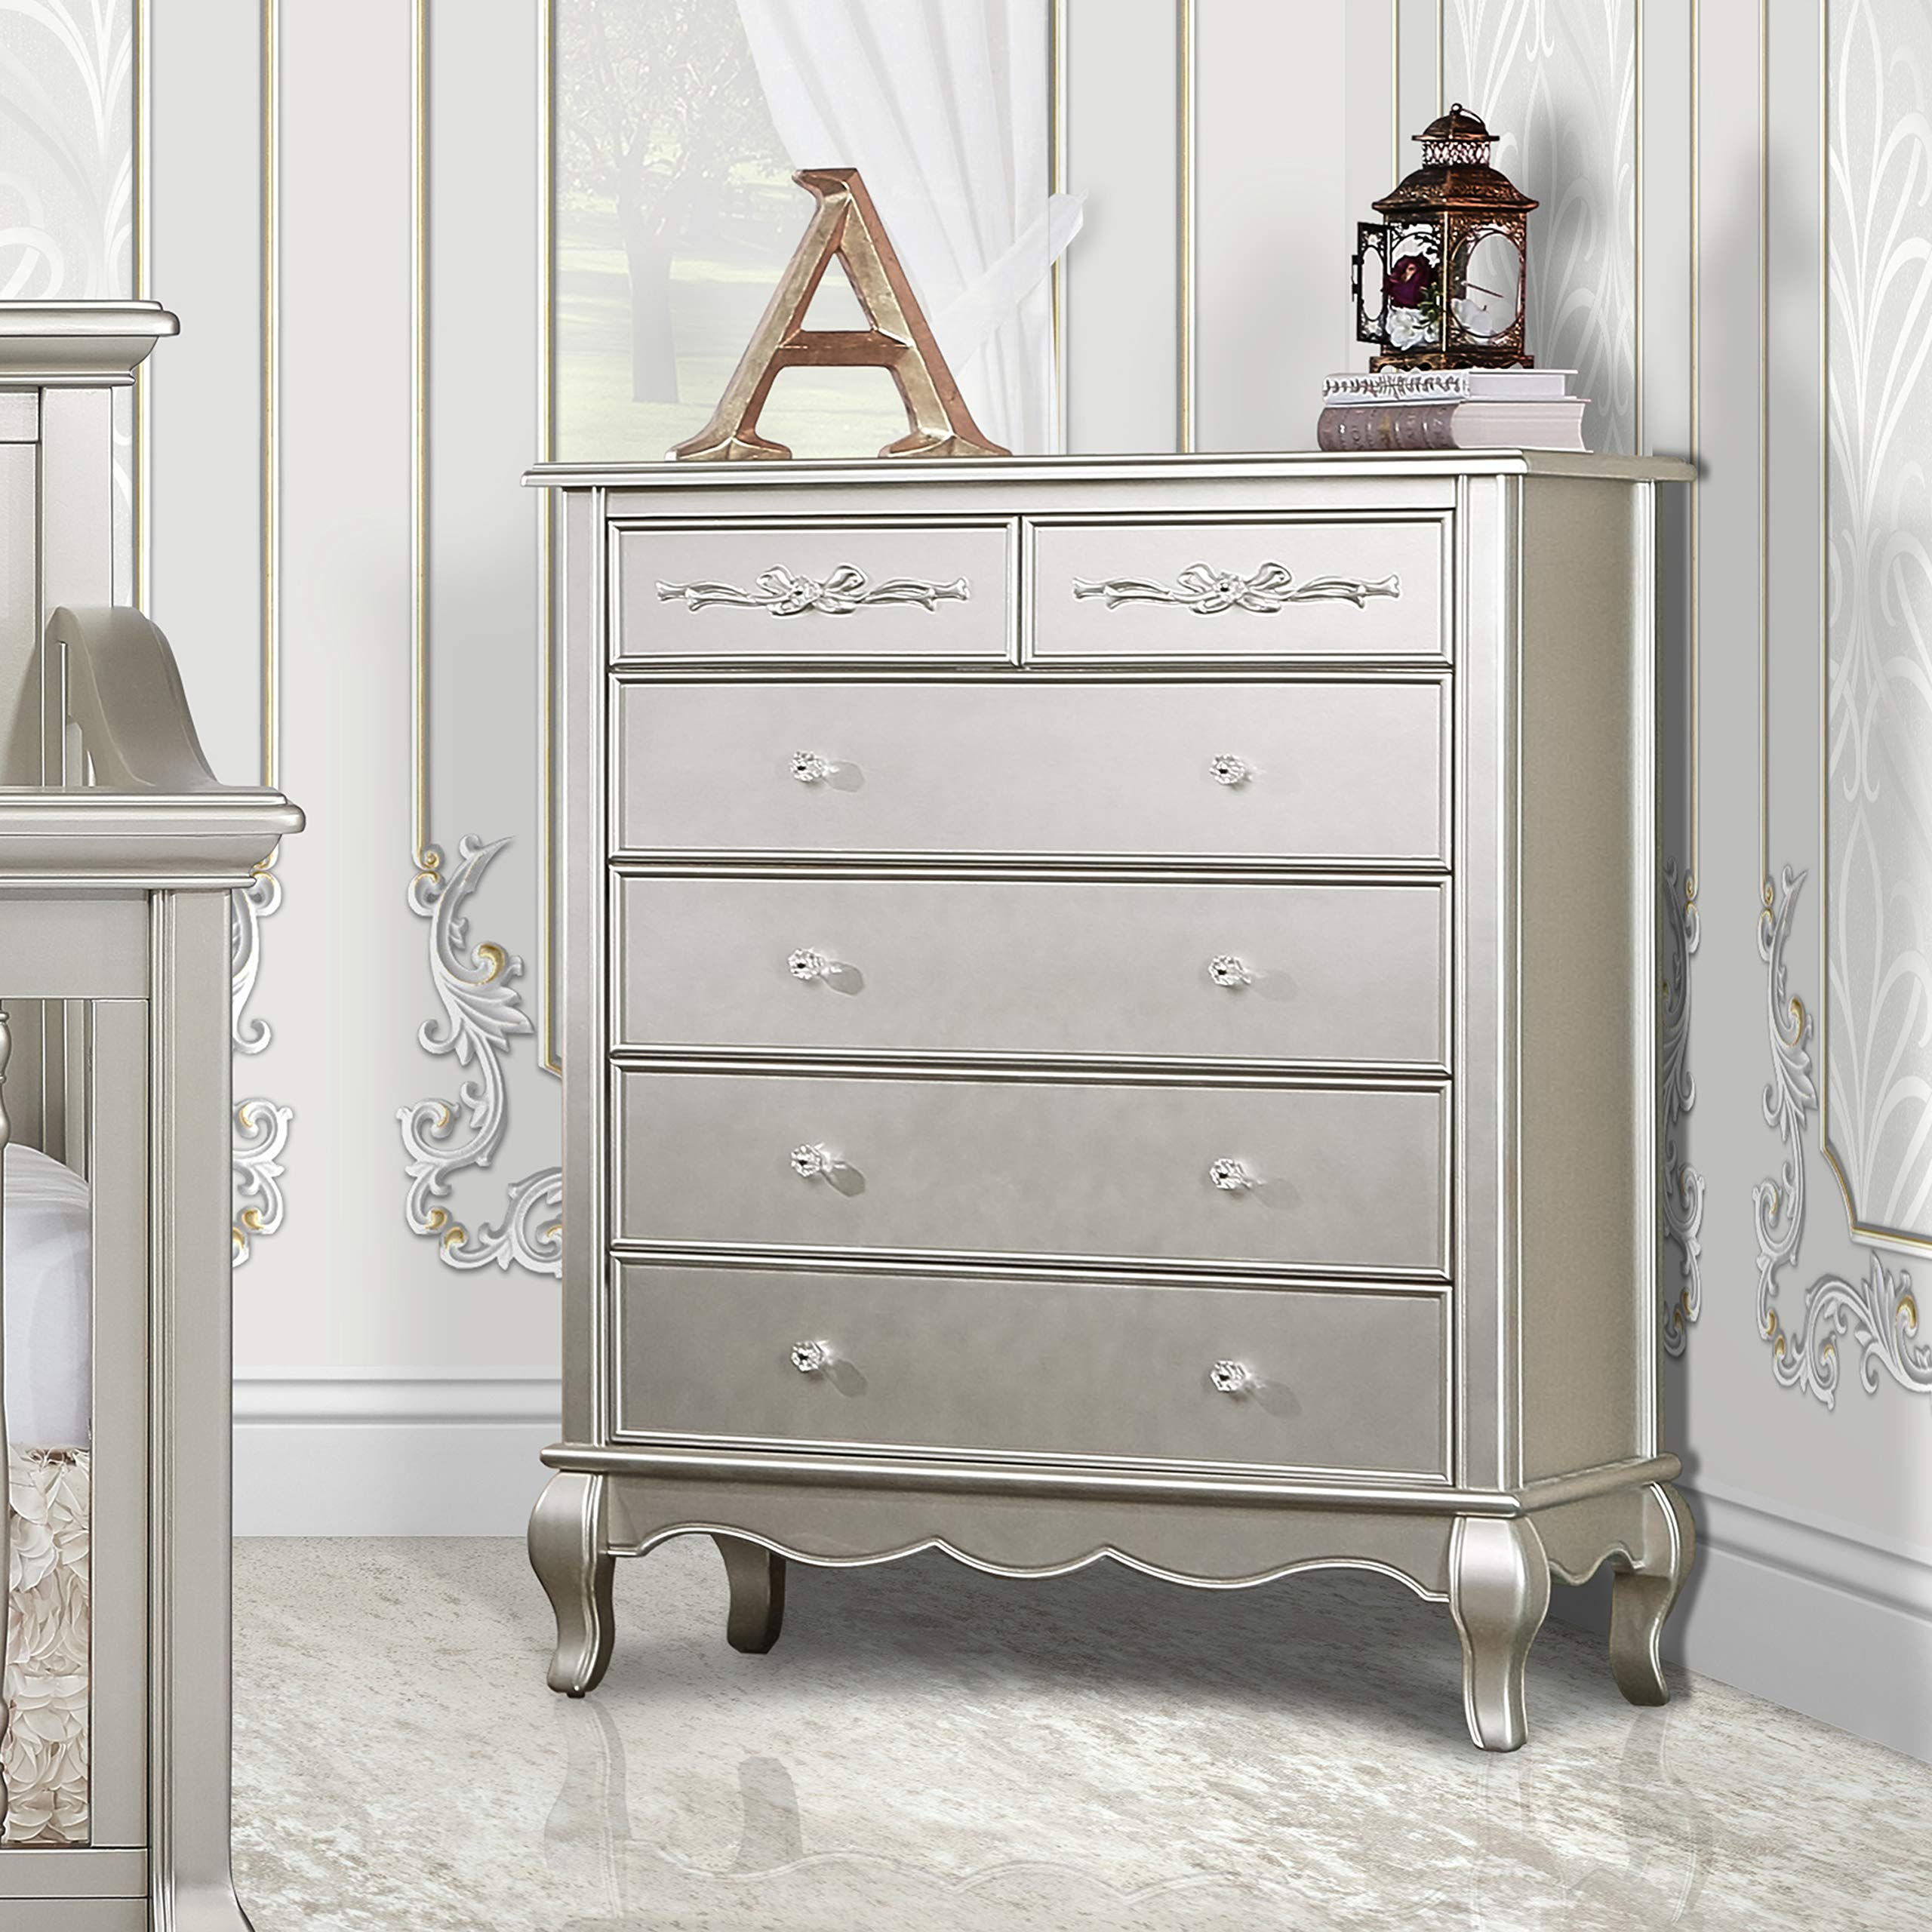 Evolur Aurora 6 Drawer Tall Chest, Metallic Gold Dust by Evolur